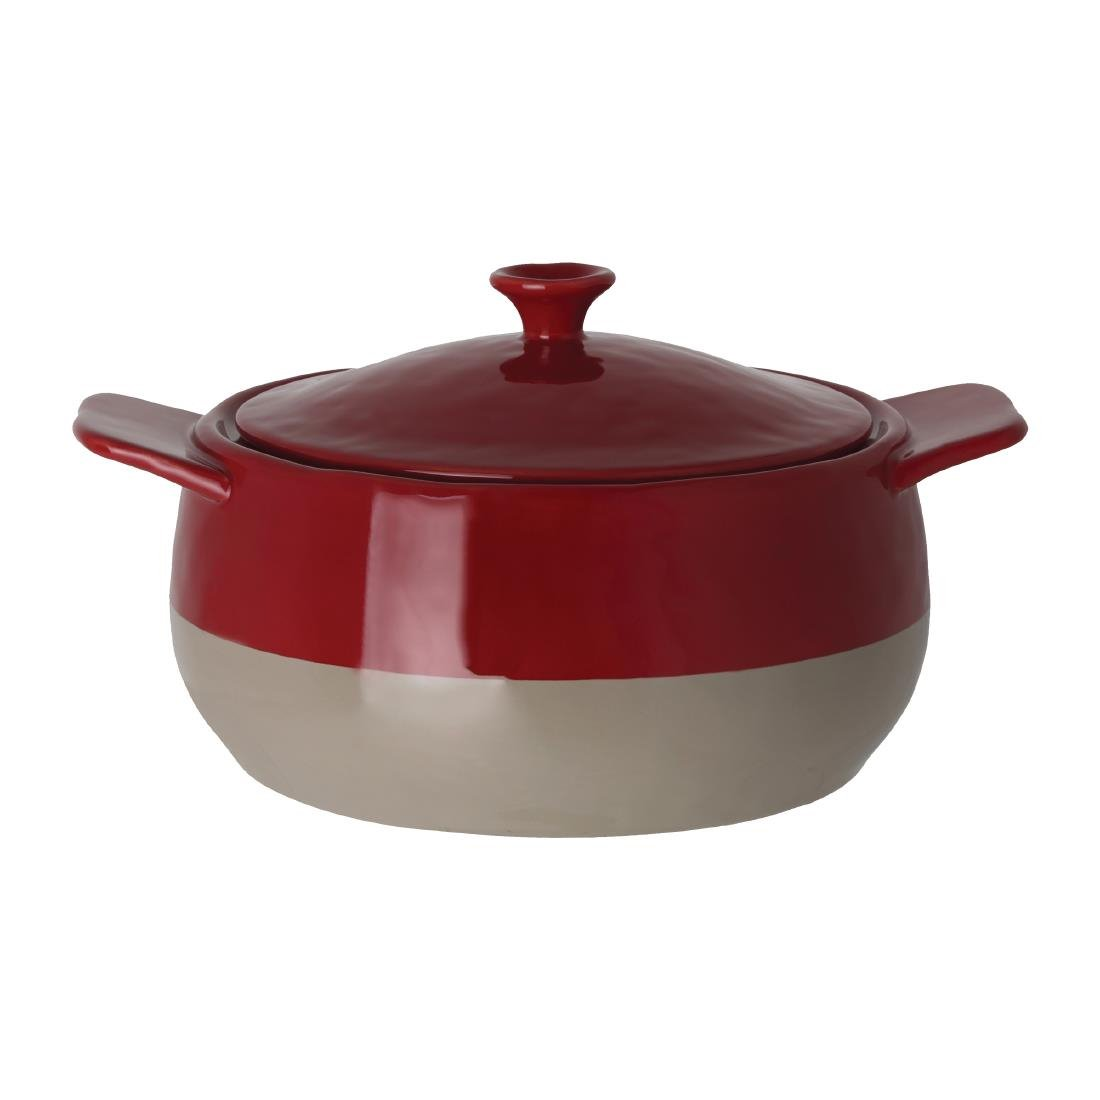 Olympia Cookware Mini 2-tone Cocotte with Lid         17.2x12.6x8.6cm